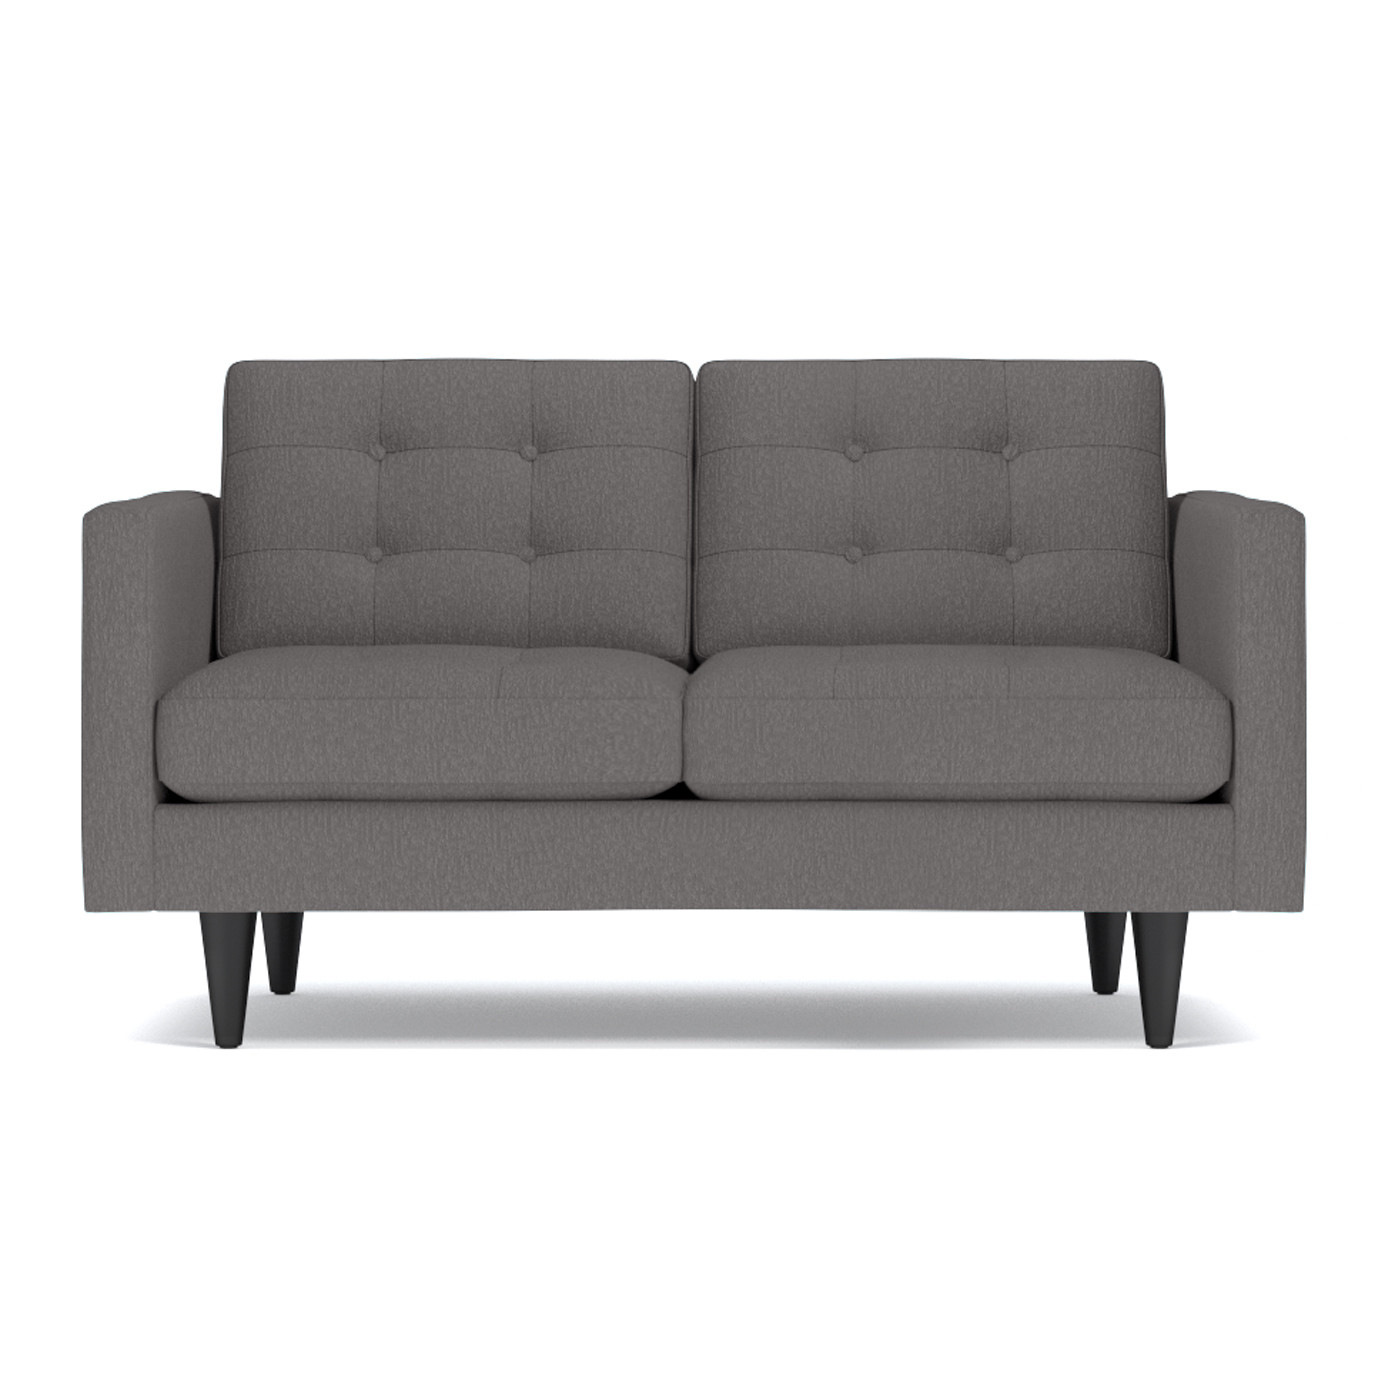 Small Sectional Sofa For Apartment: Apartment Size Sectionals